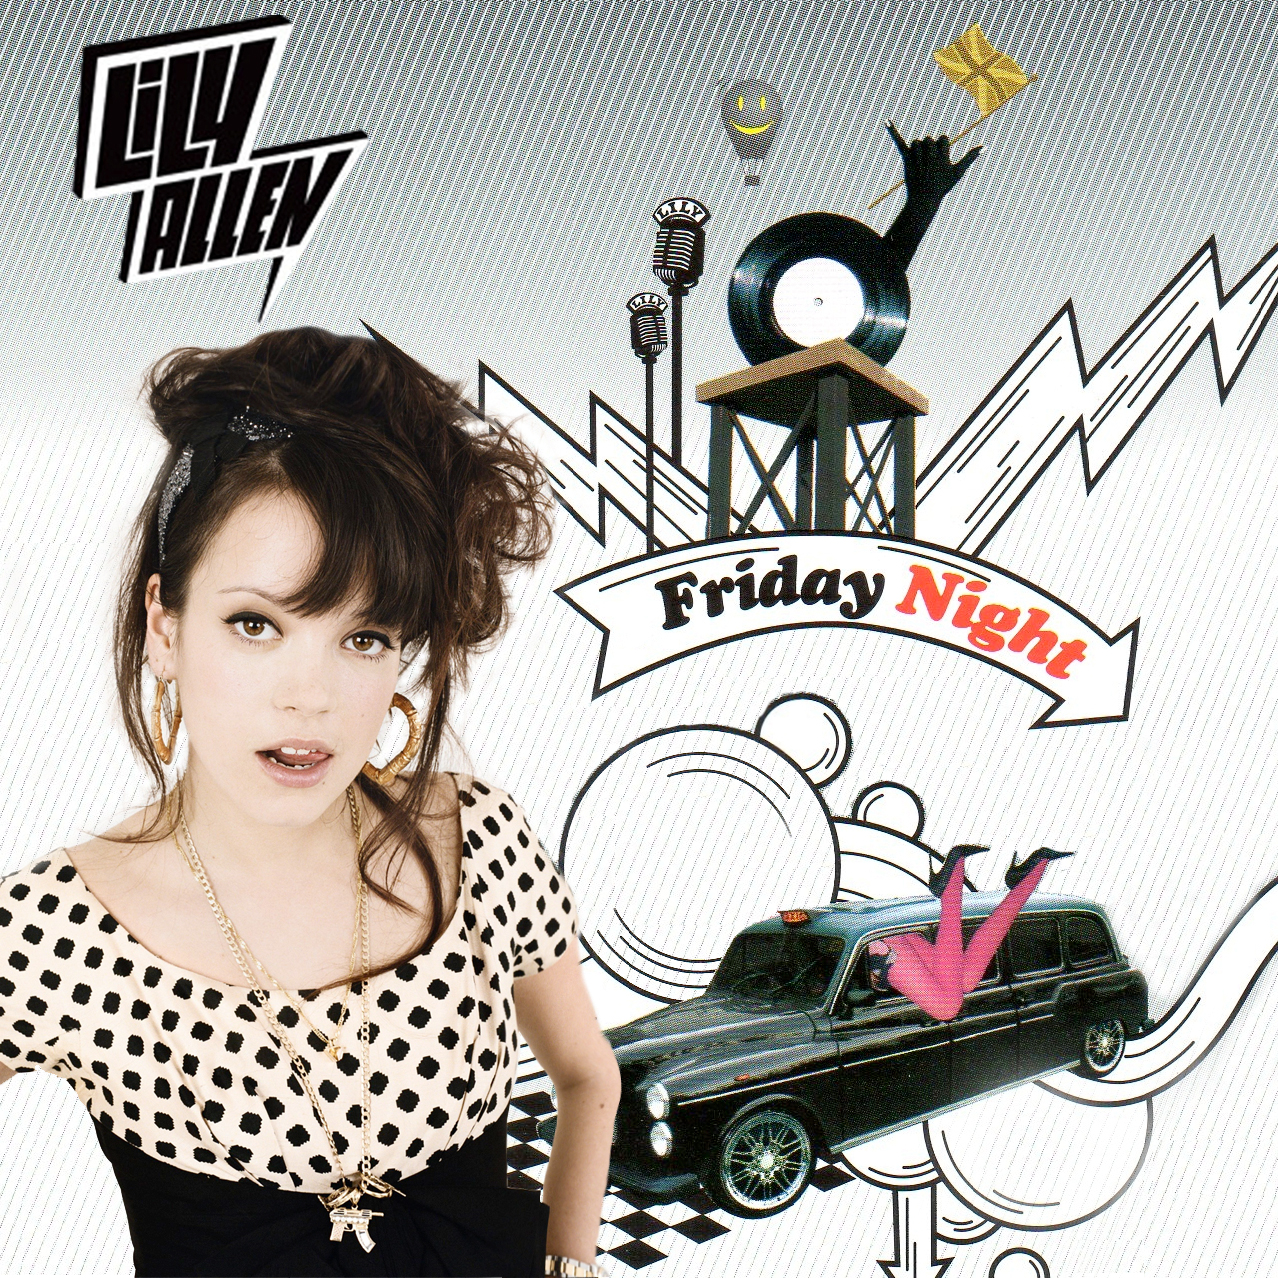 http://3.bp.blogspot.com/-XoHWJsEEBqY/UFRinrtfNHI/AAAAAAAAAG0/S06hKvY4nJ8/s1600/lily+allen+alright,still+friday+night+single+cover+.jpg